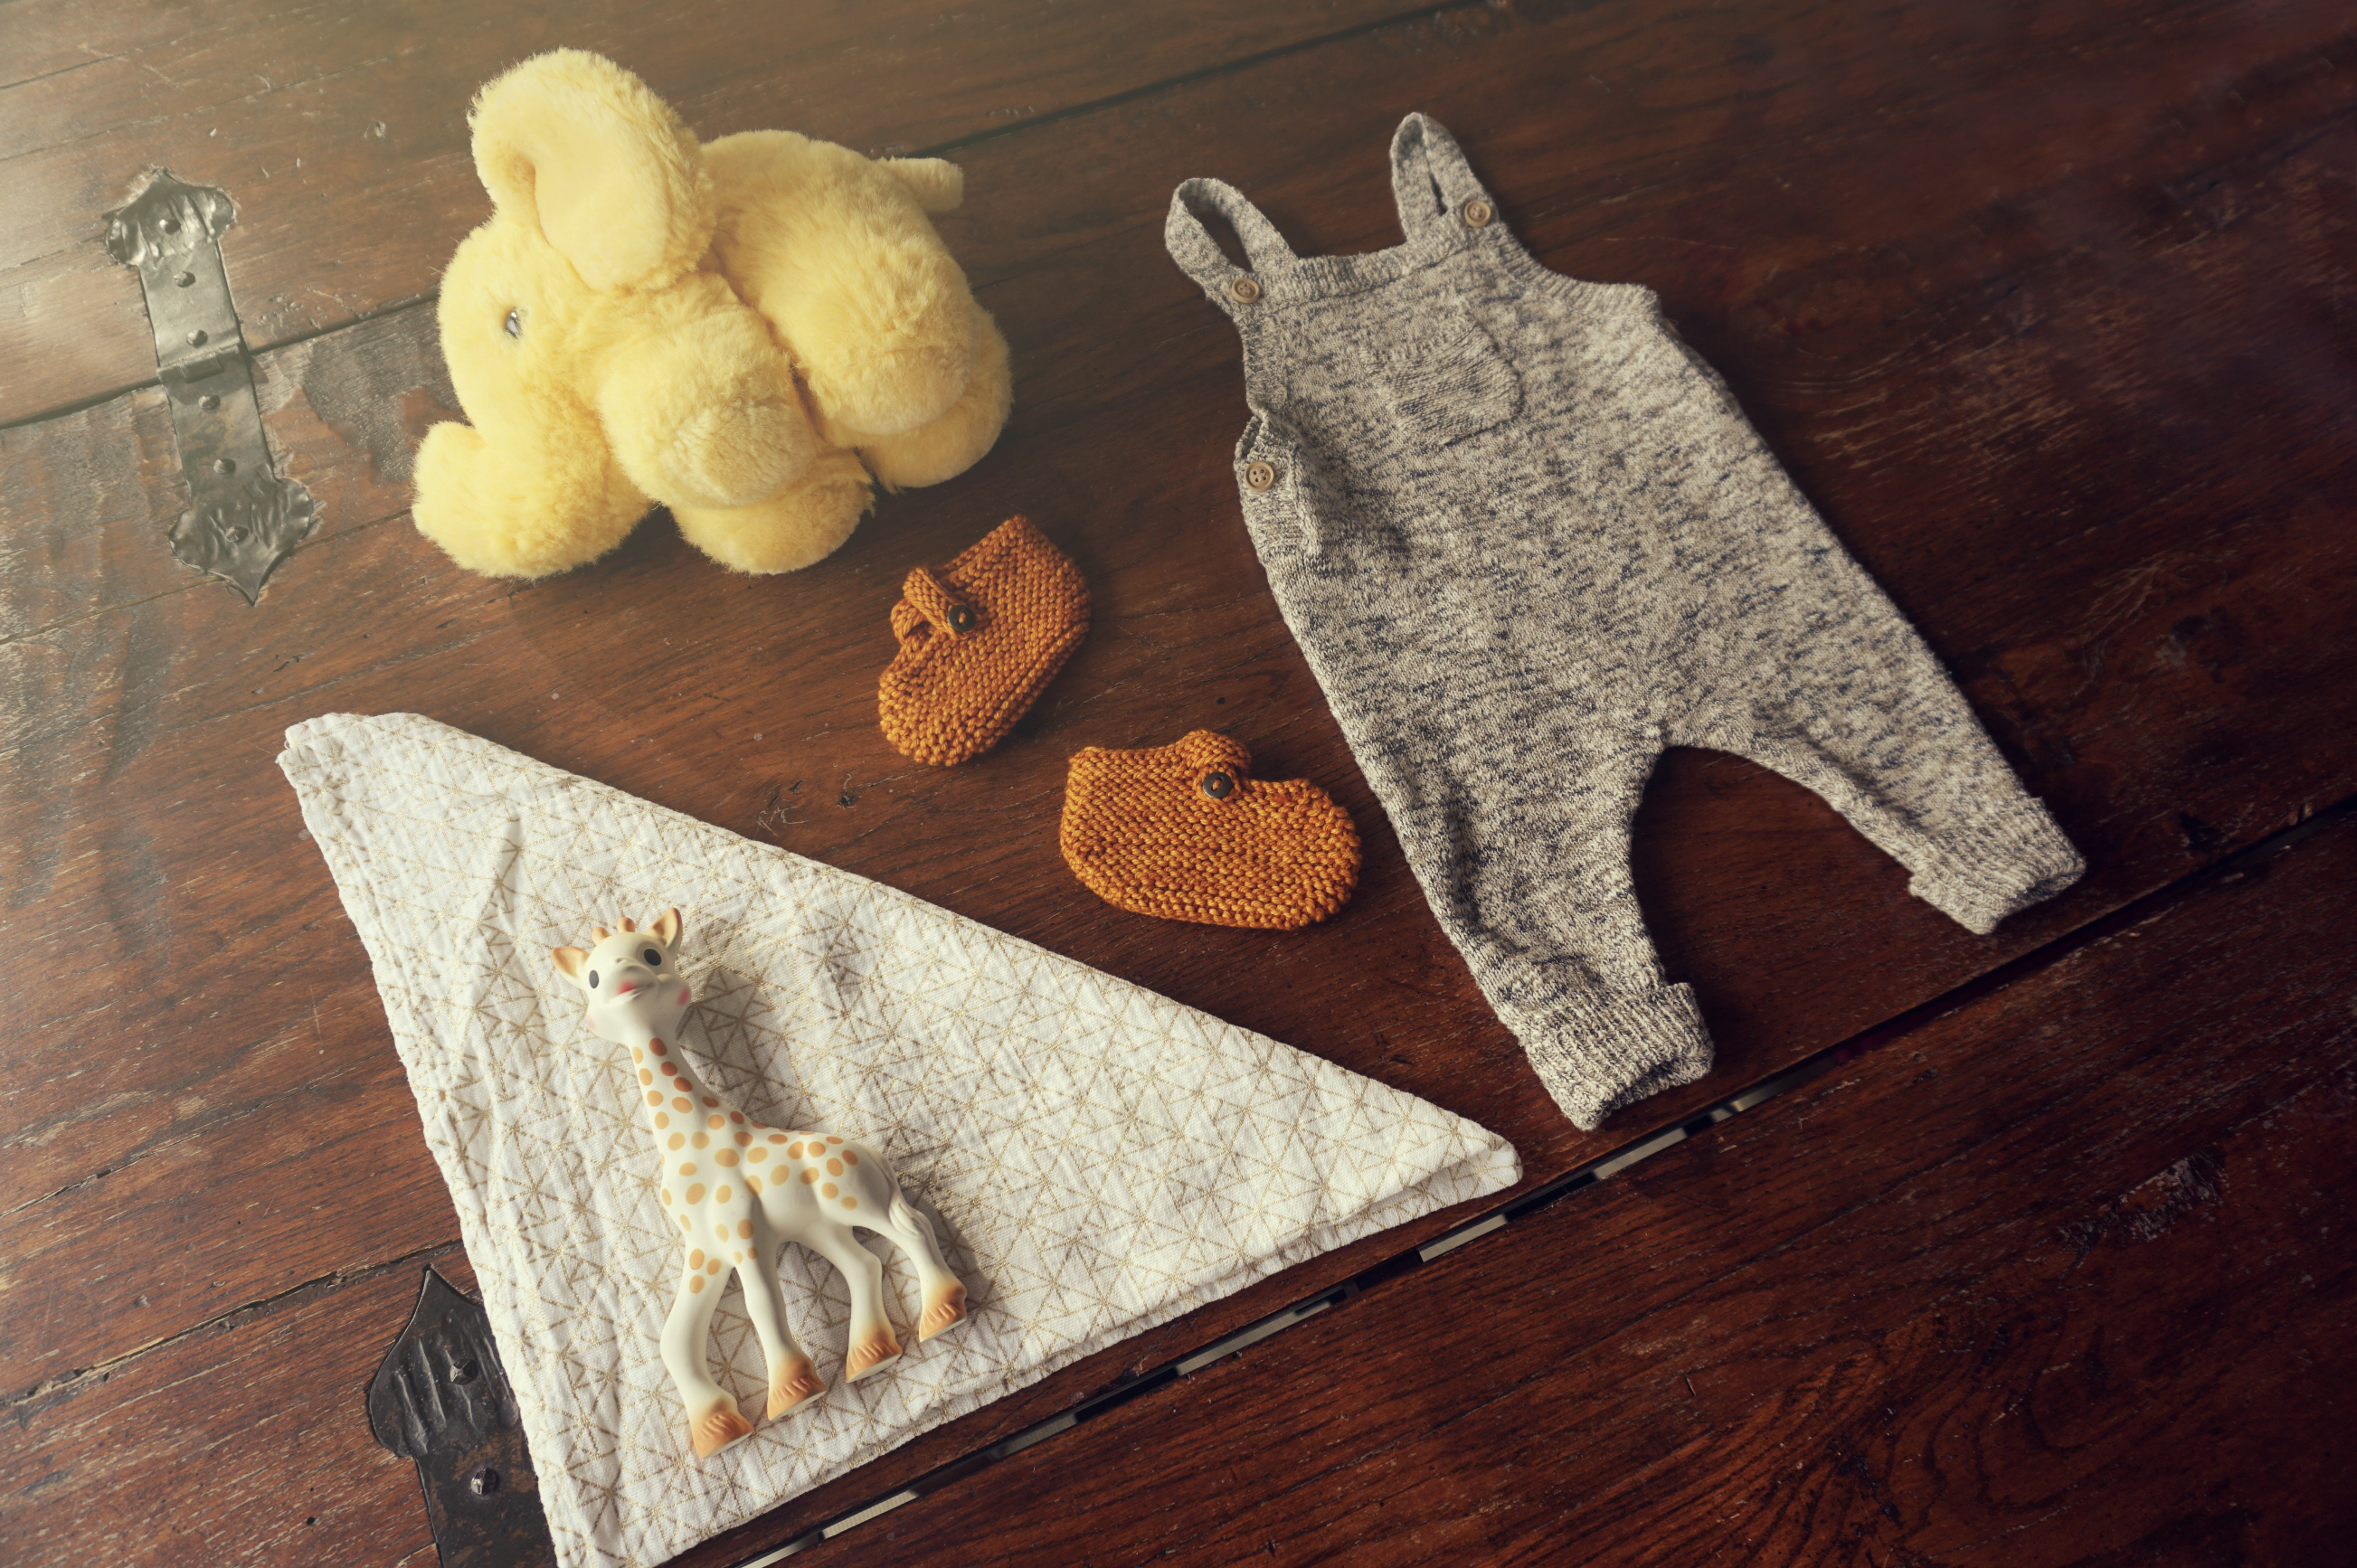 maybeyoulike_baby_outfit_yellow_6